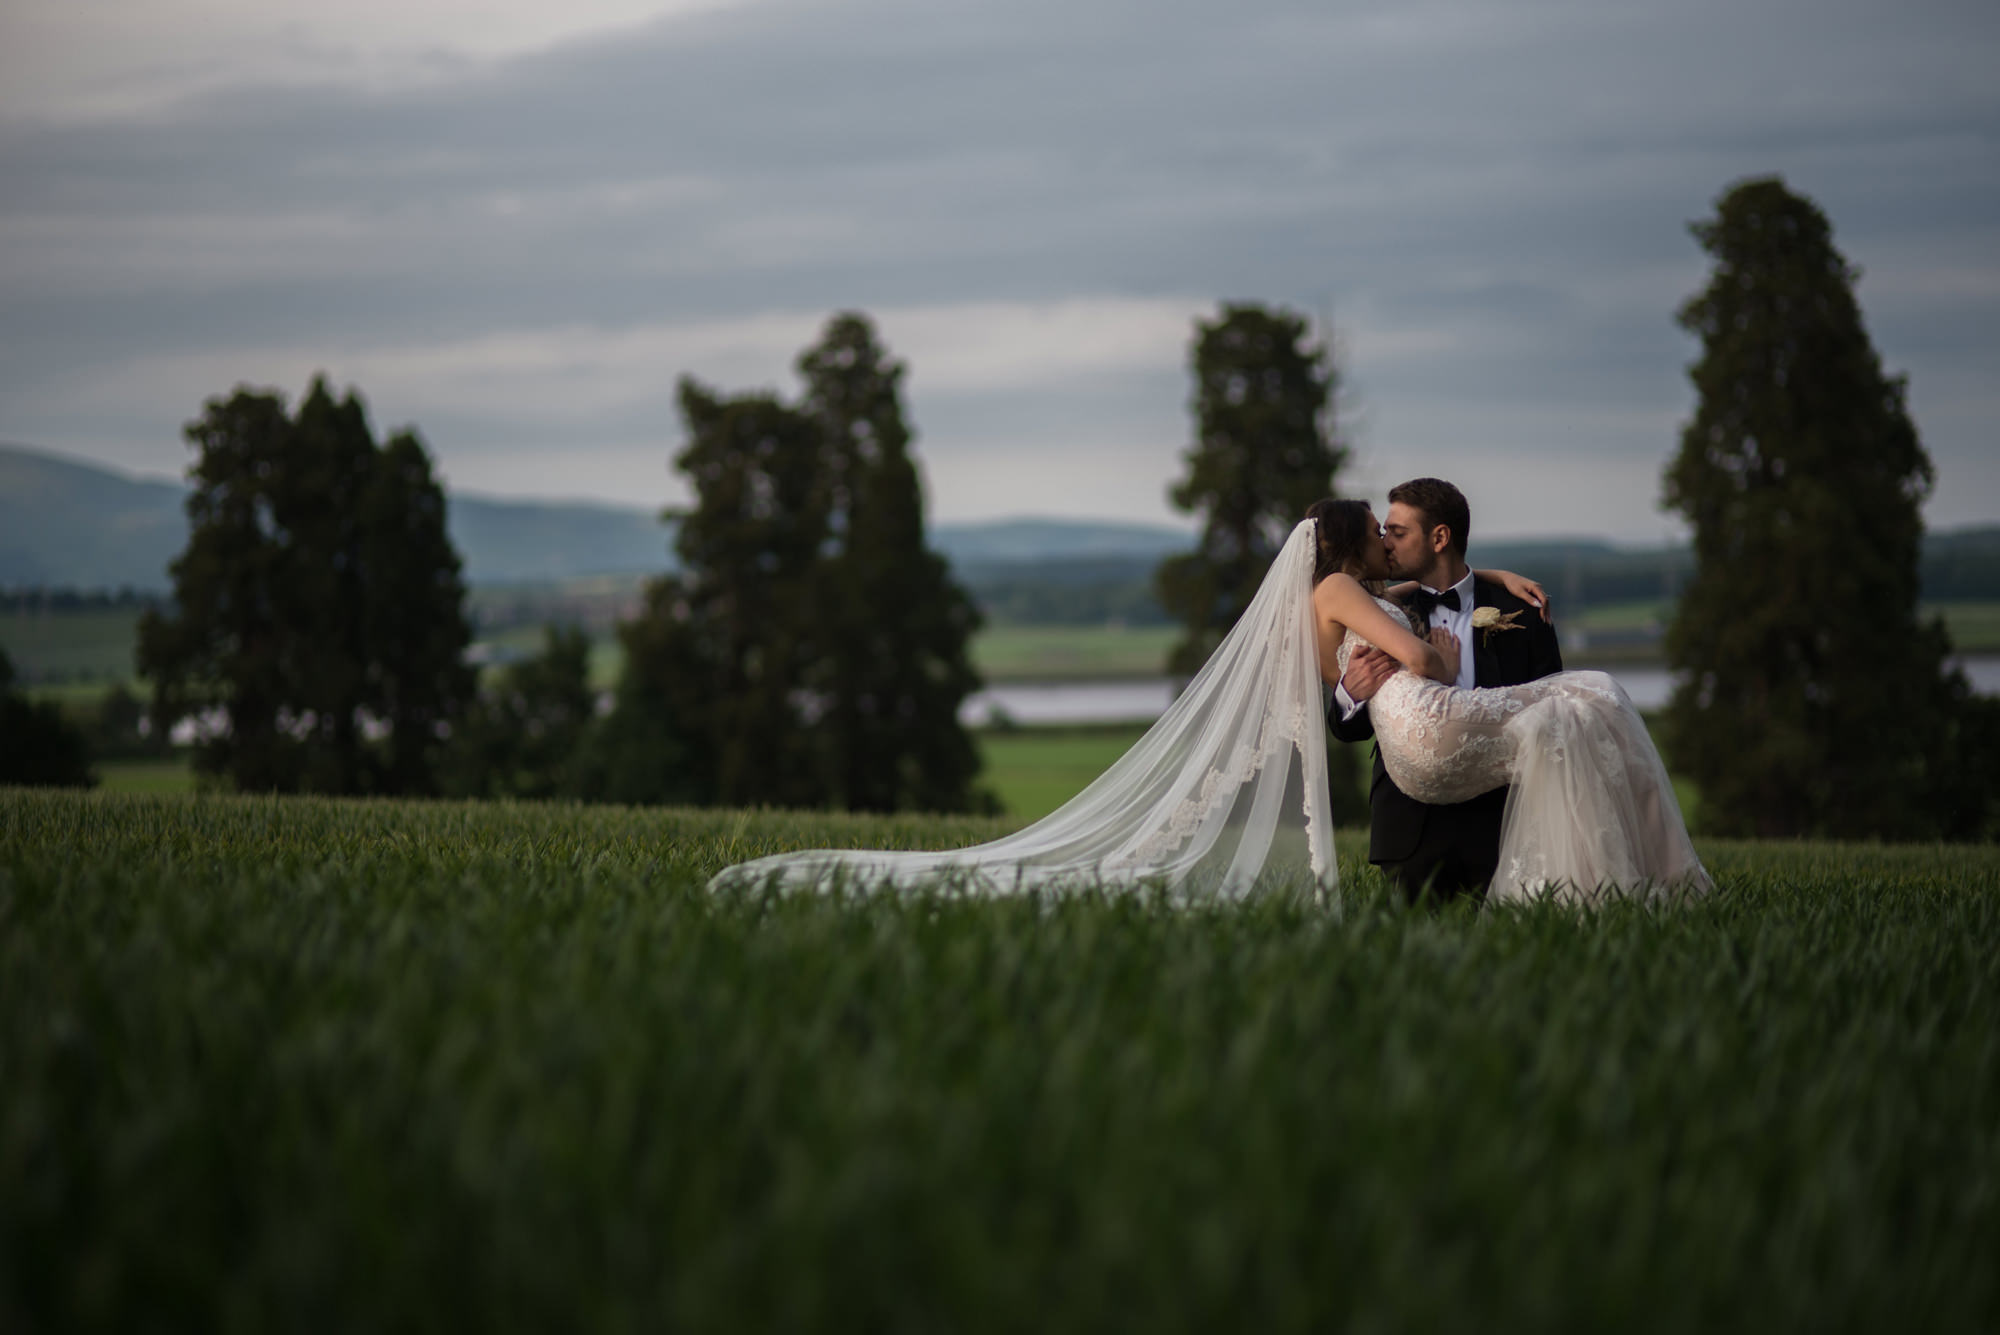 parsonage-dunmore-wedding.jpg